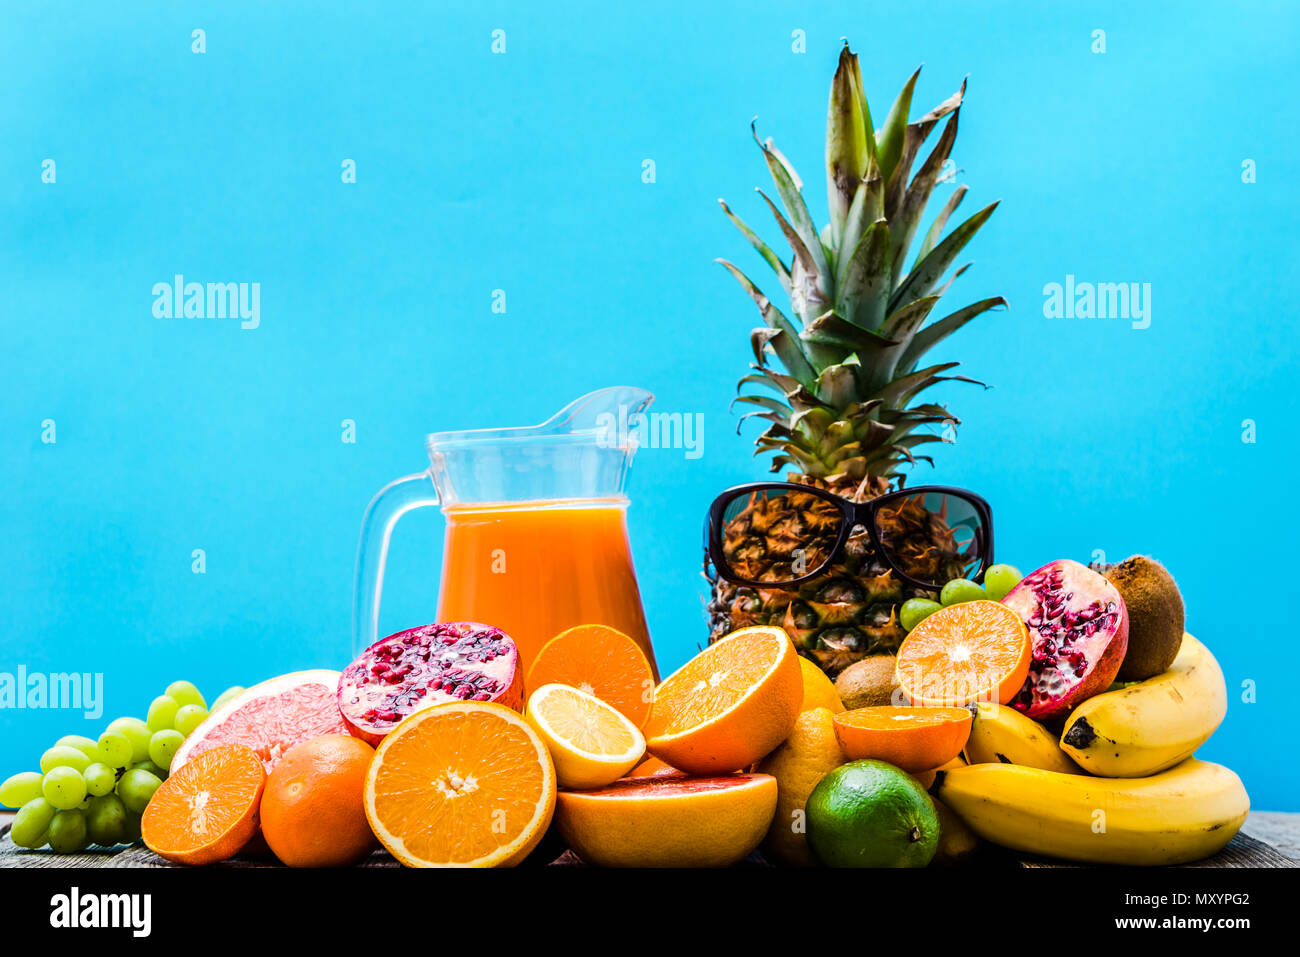 Fruit Juice With Tropical Fruits Healthy Drink With Refreshing Orange And Pineapple Stock Photo Alamy